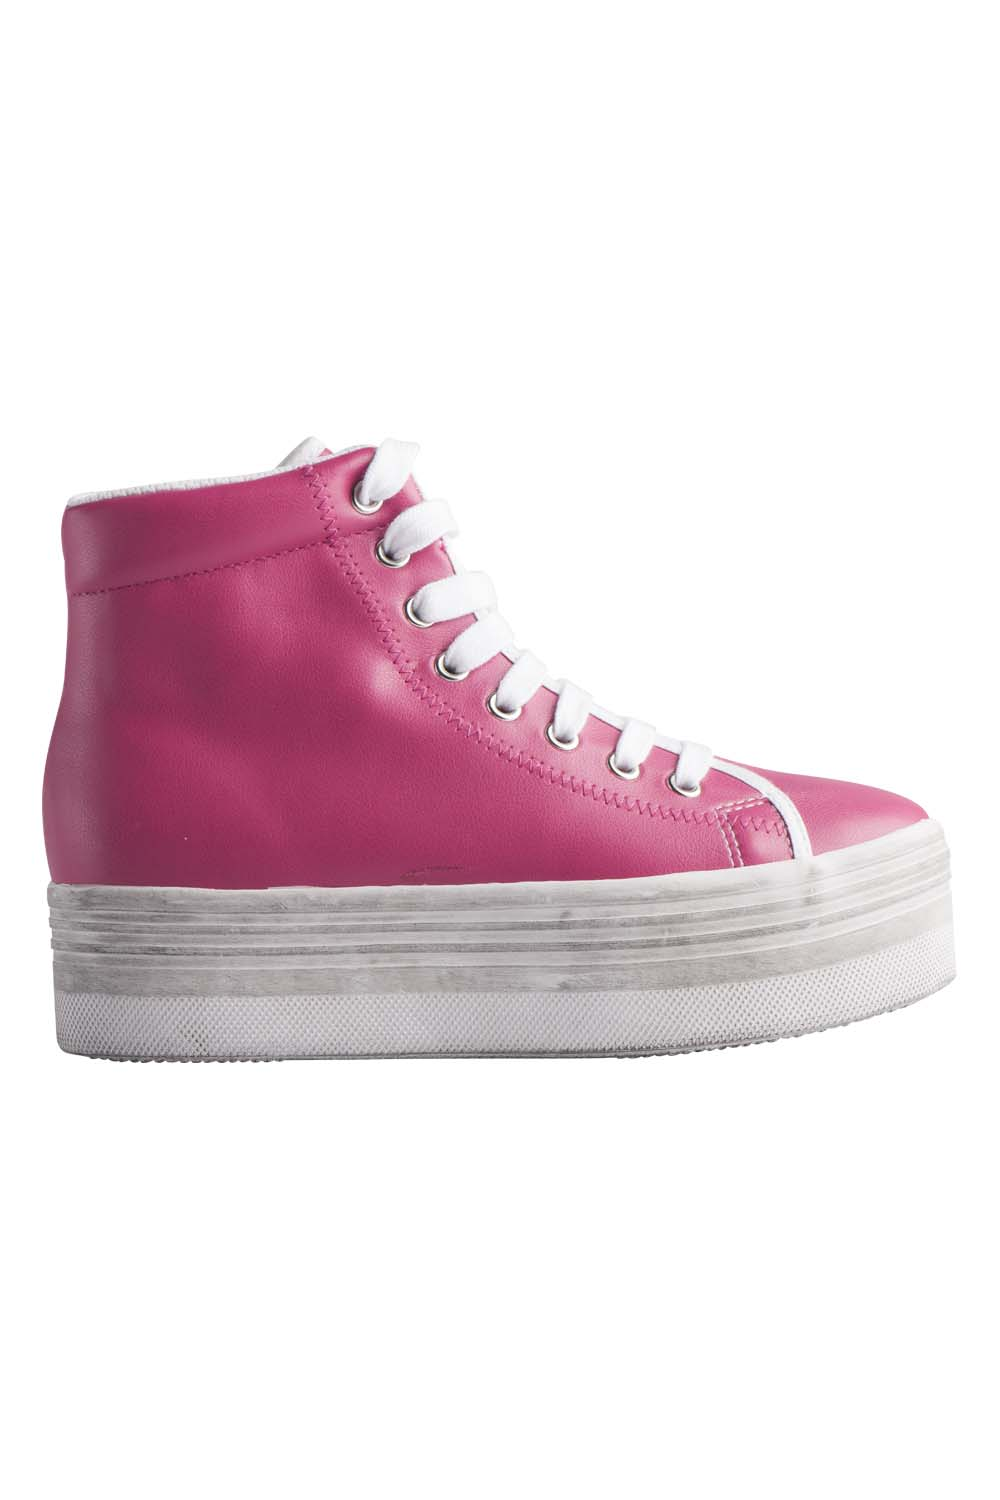 JEFFREY CAMPBELL SNEAKERS - HOMG FUCHSIA LEATHER.jpg